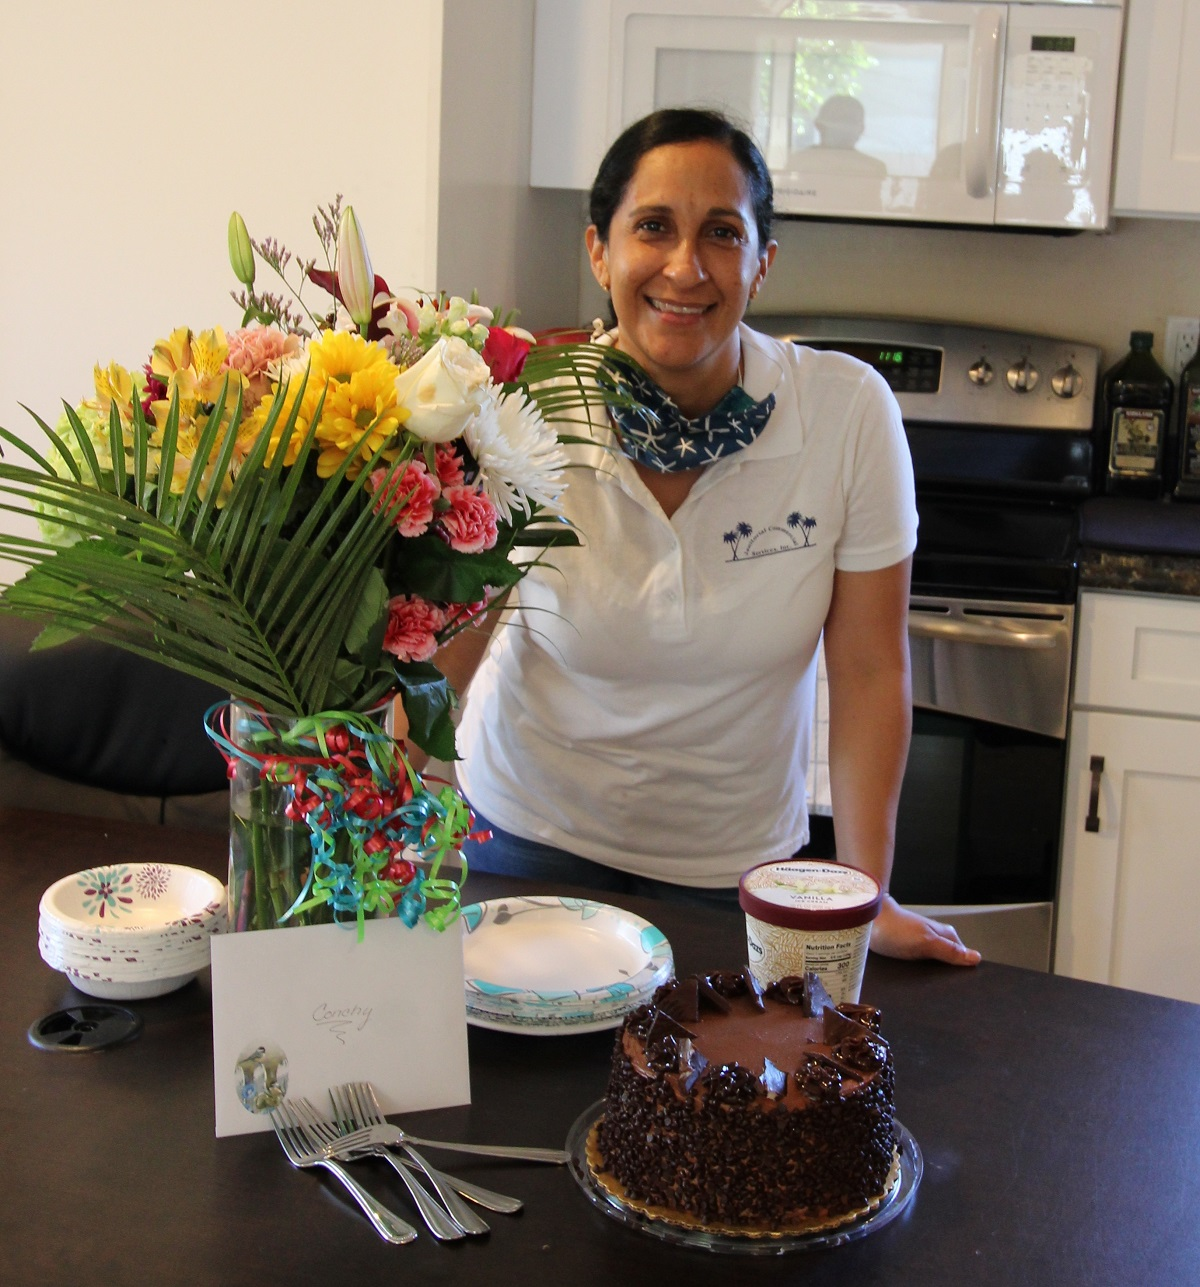 Conchy, a female, standing next to a floral arrangement and a chocolate cake in front of her